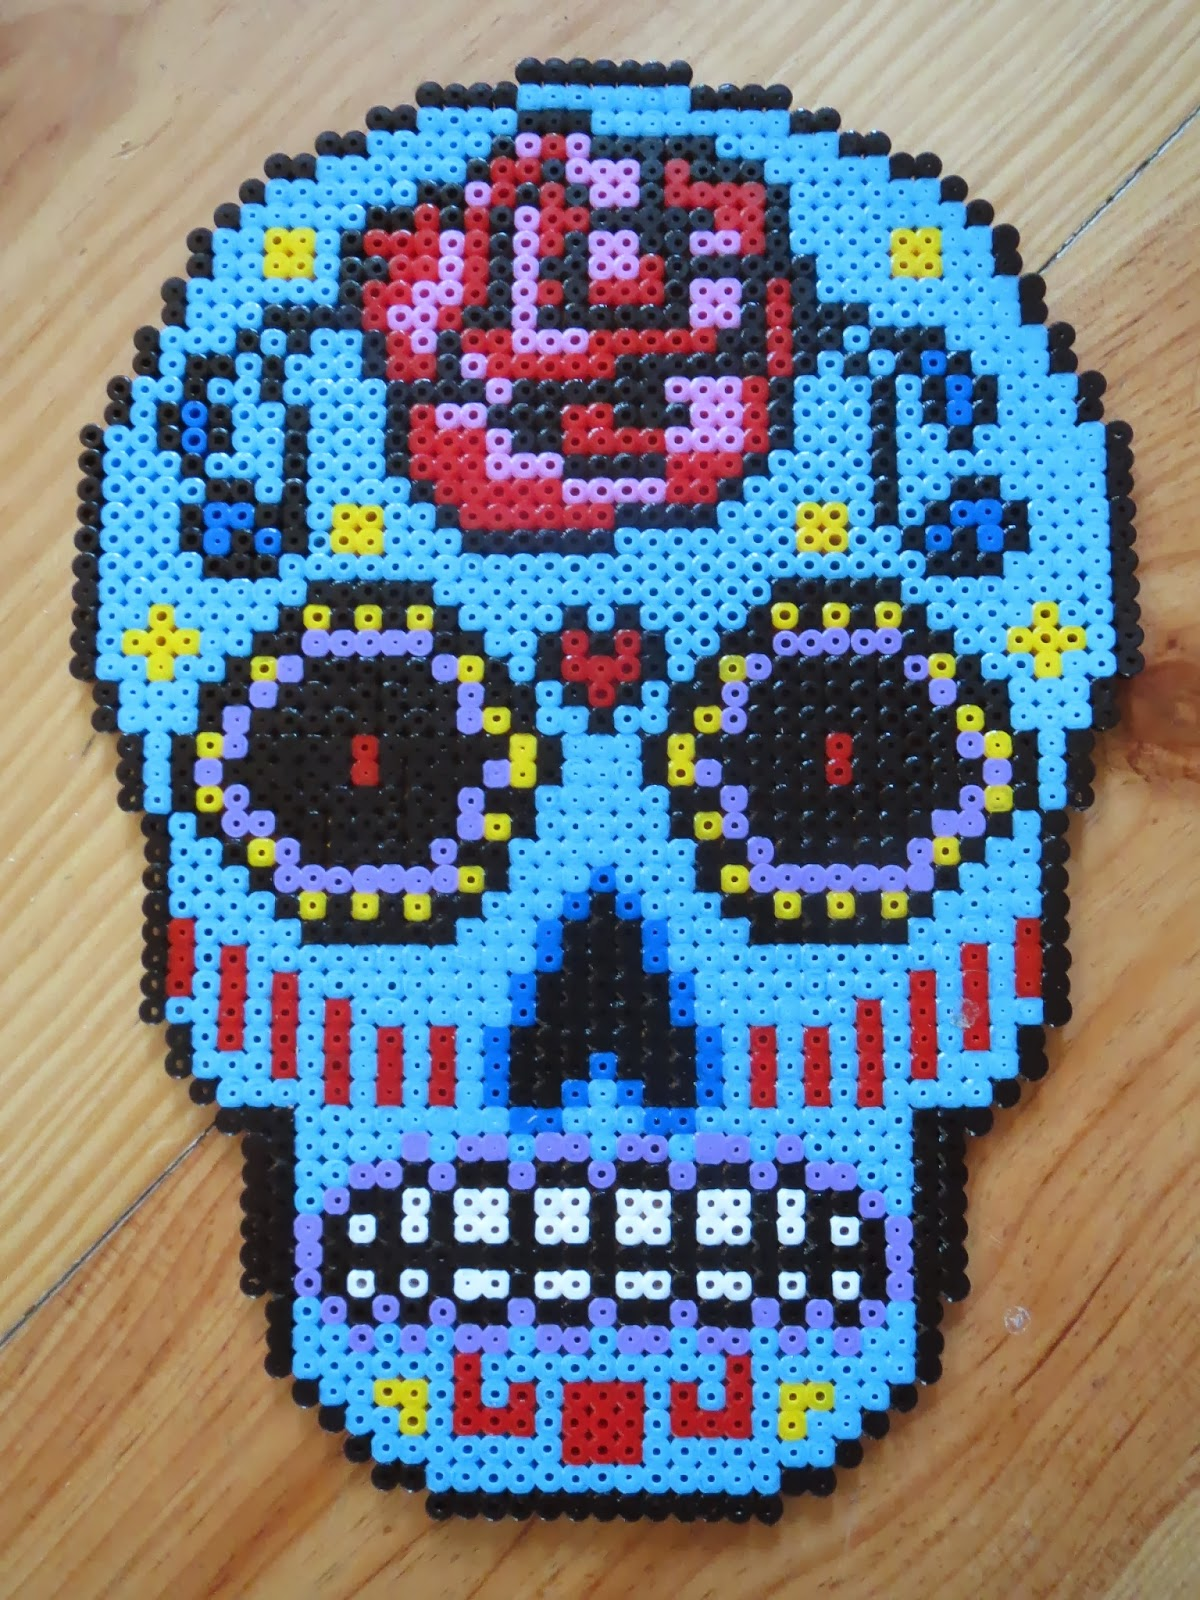 Crochet Tutorial: Sugar Skull Ski Mask - YARNutopia by Nadia Fuad ... | 1600x1200